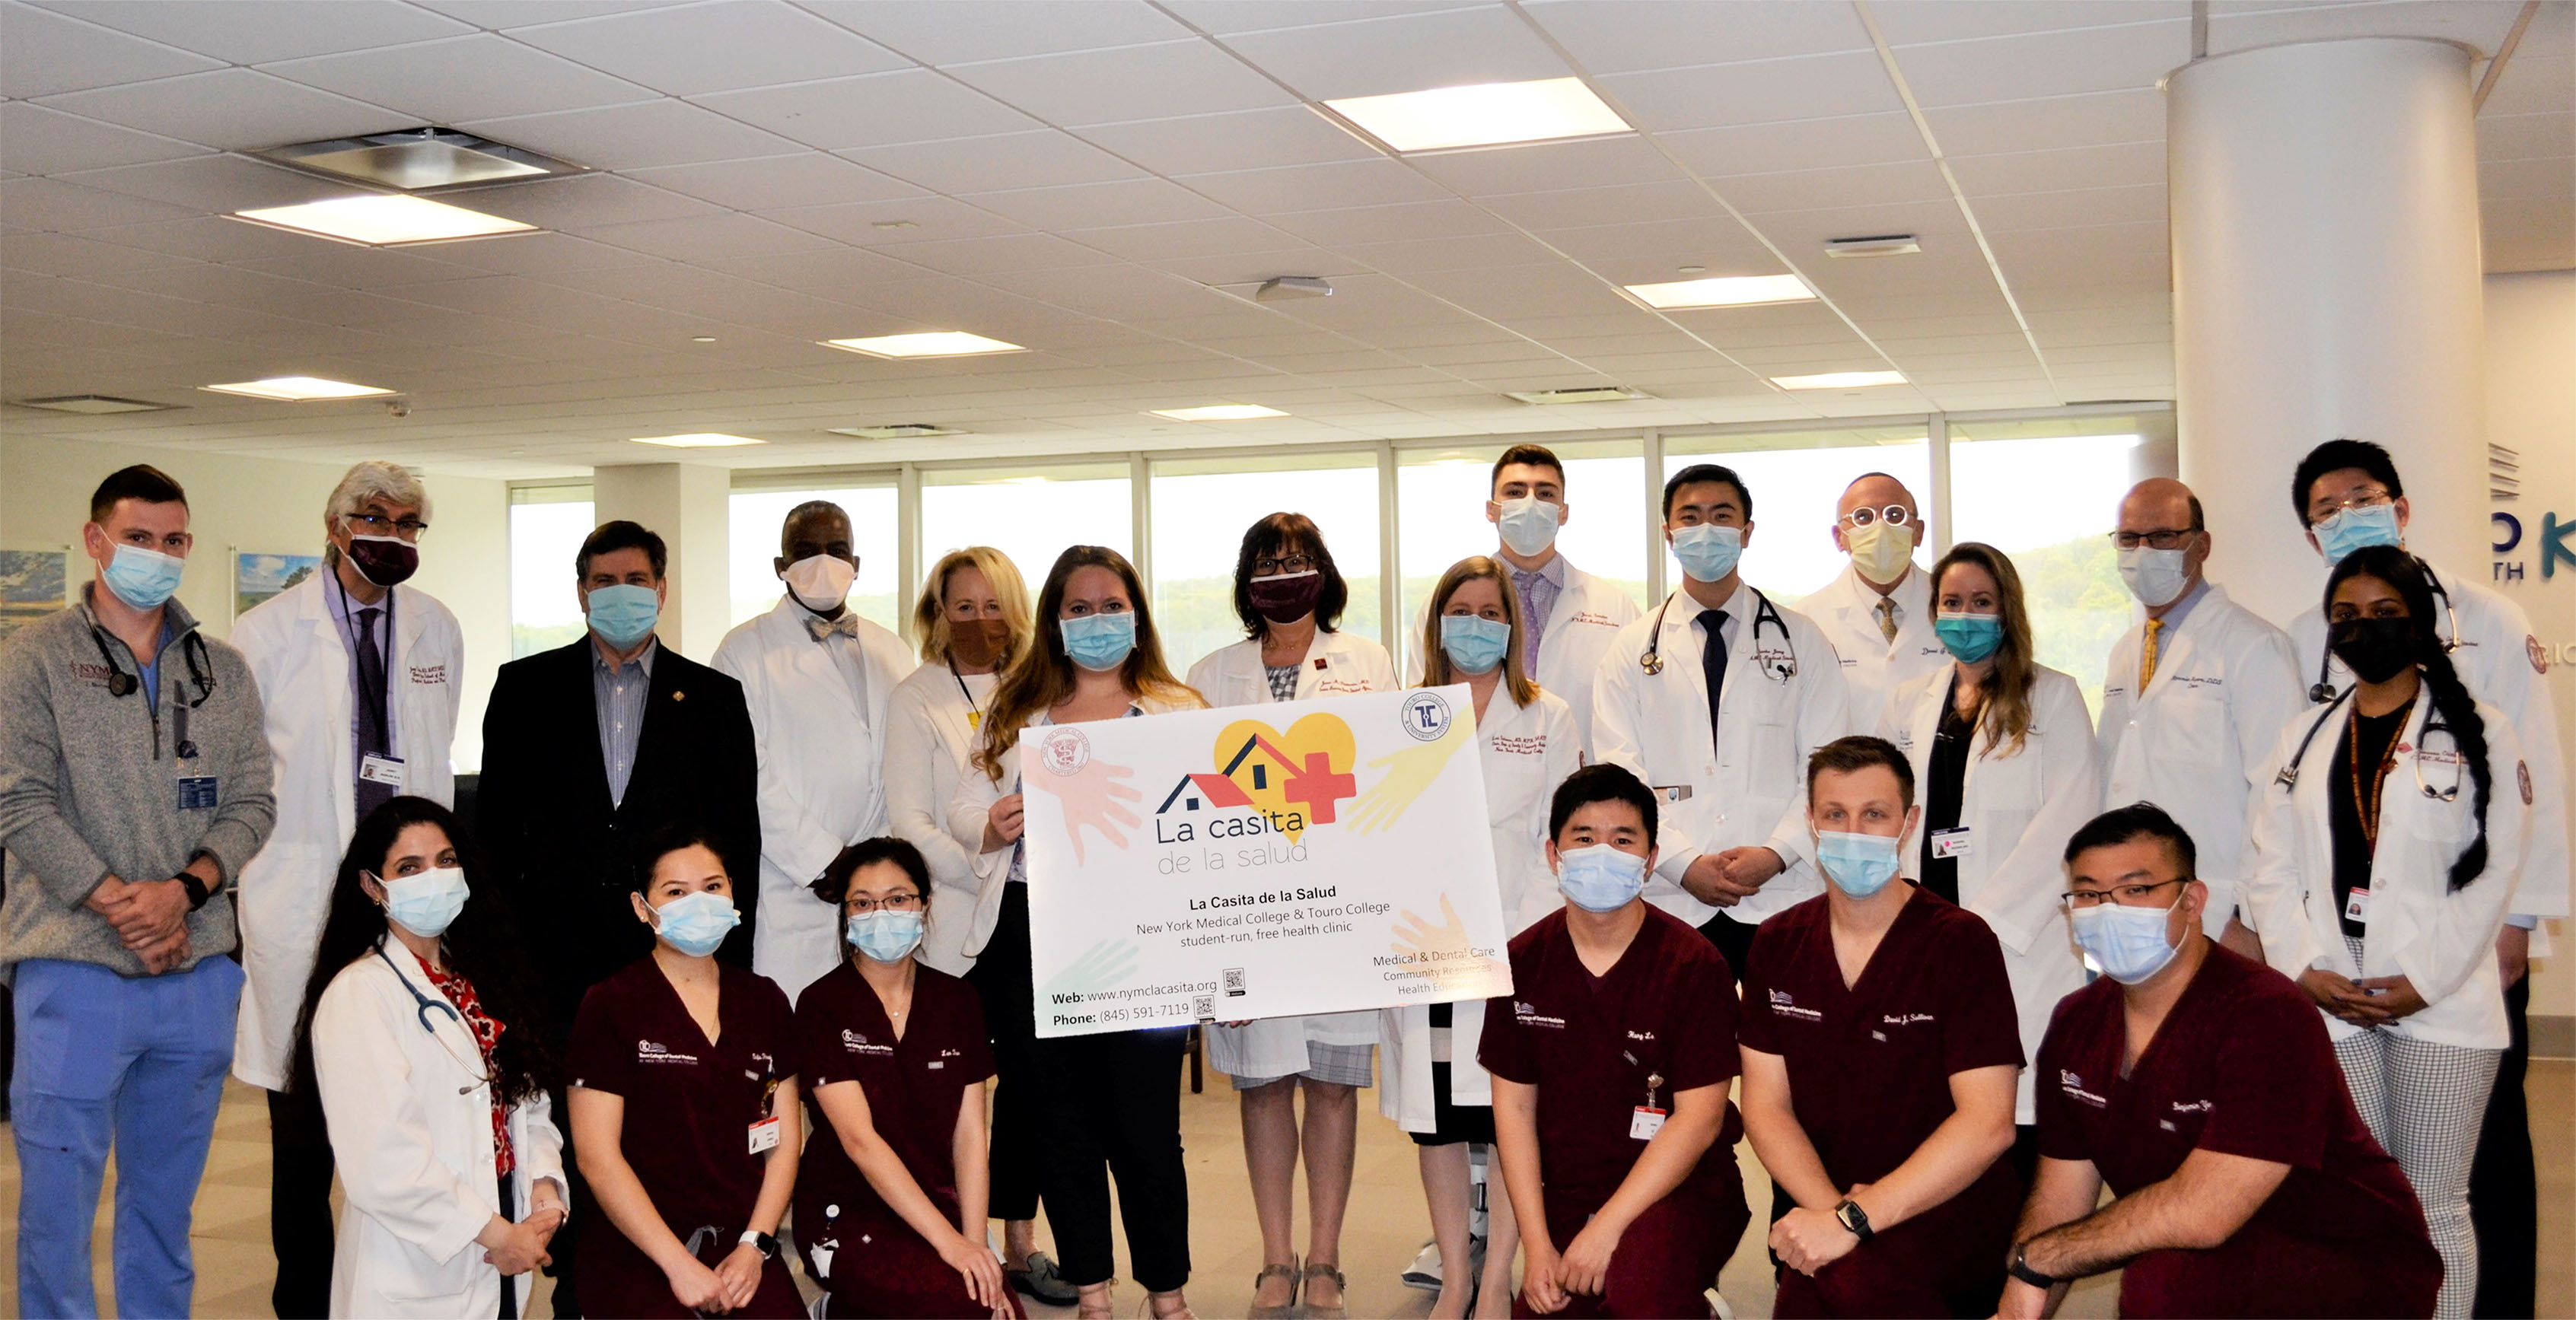 NYMC and TCDM students and faculty partner to deliver free medical and dental services